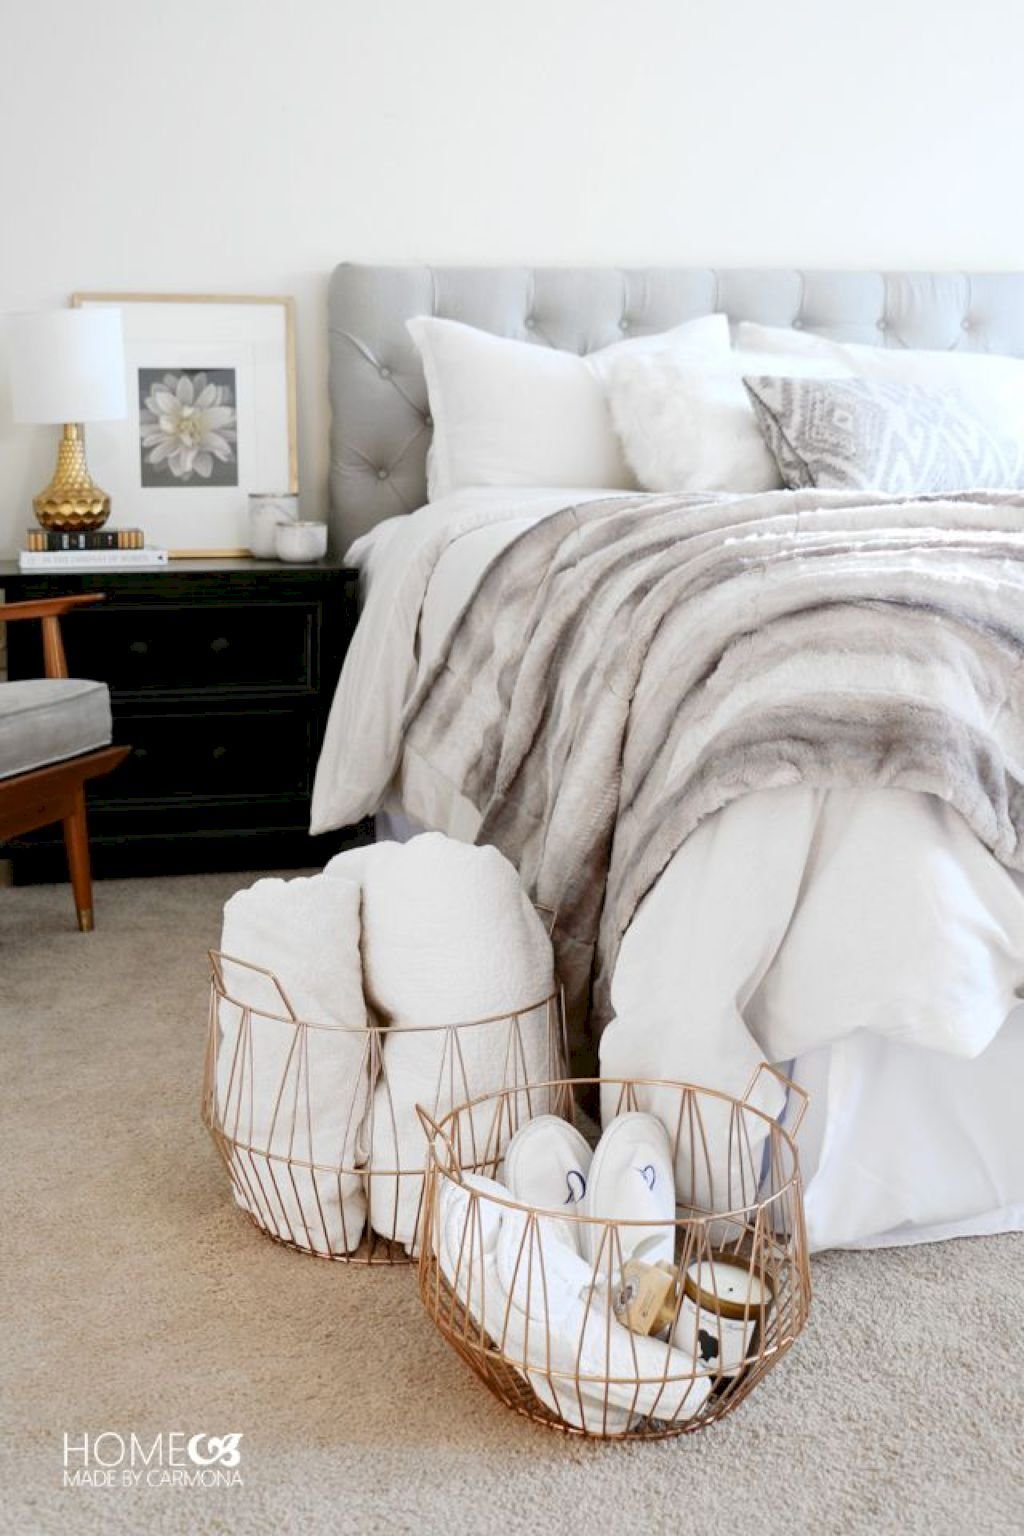 Awesome comfy apartment bedroom ideas buildecor